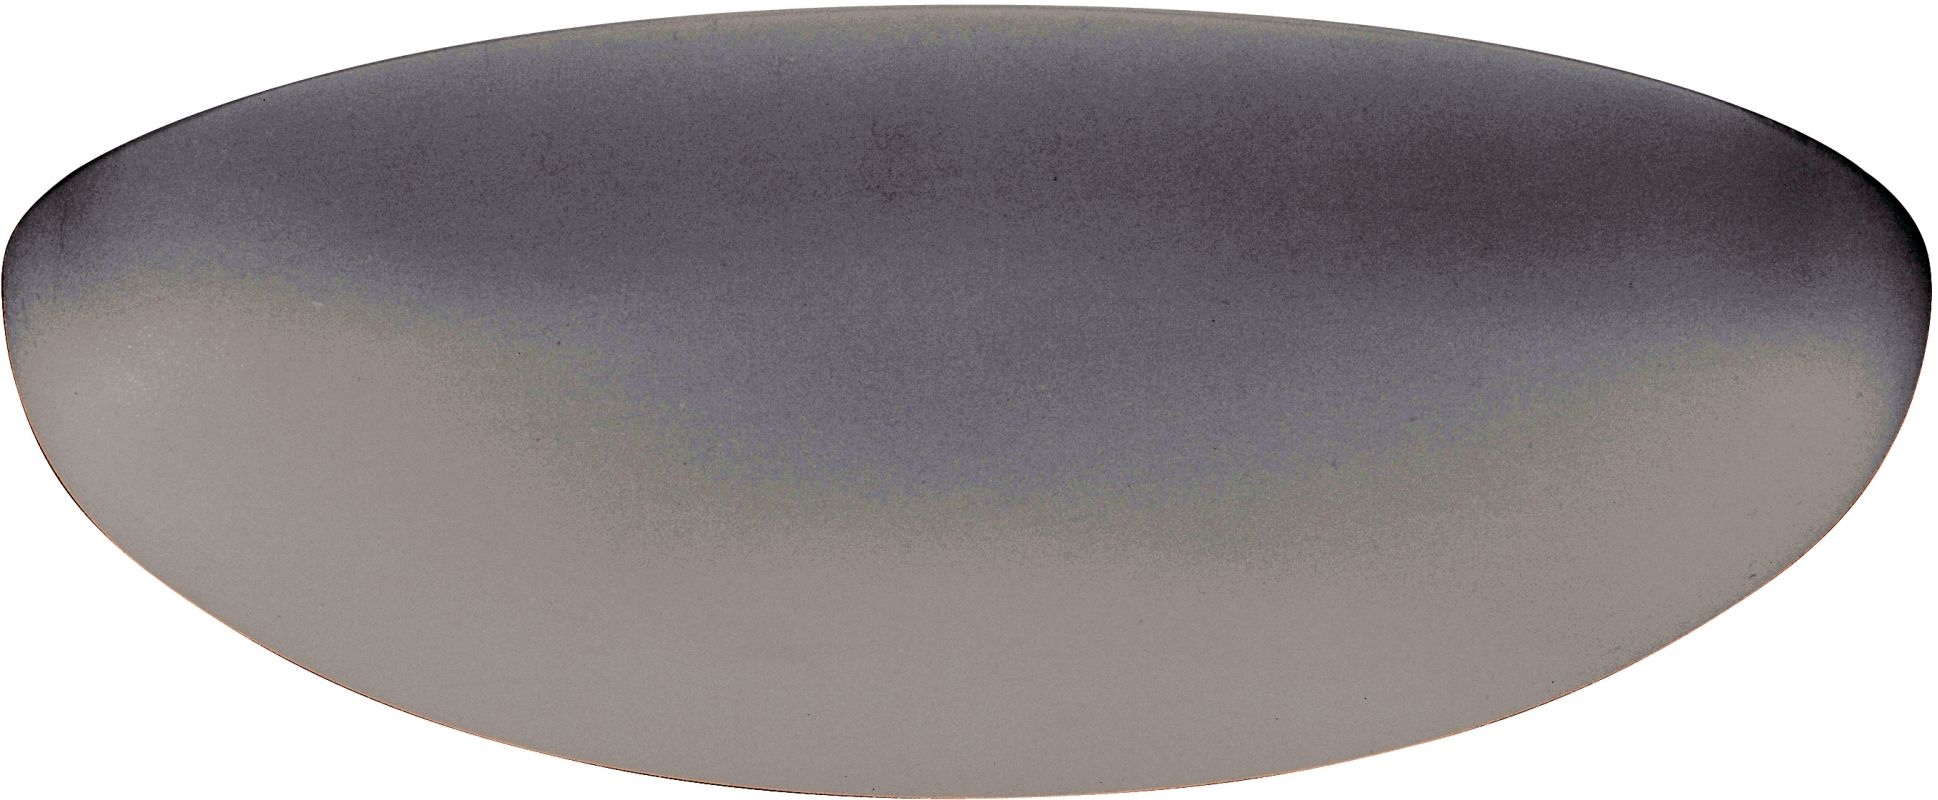 "Lithonia Lighting DFMR14 M6 14"" Round Diffuser for Low Profile"